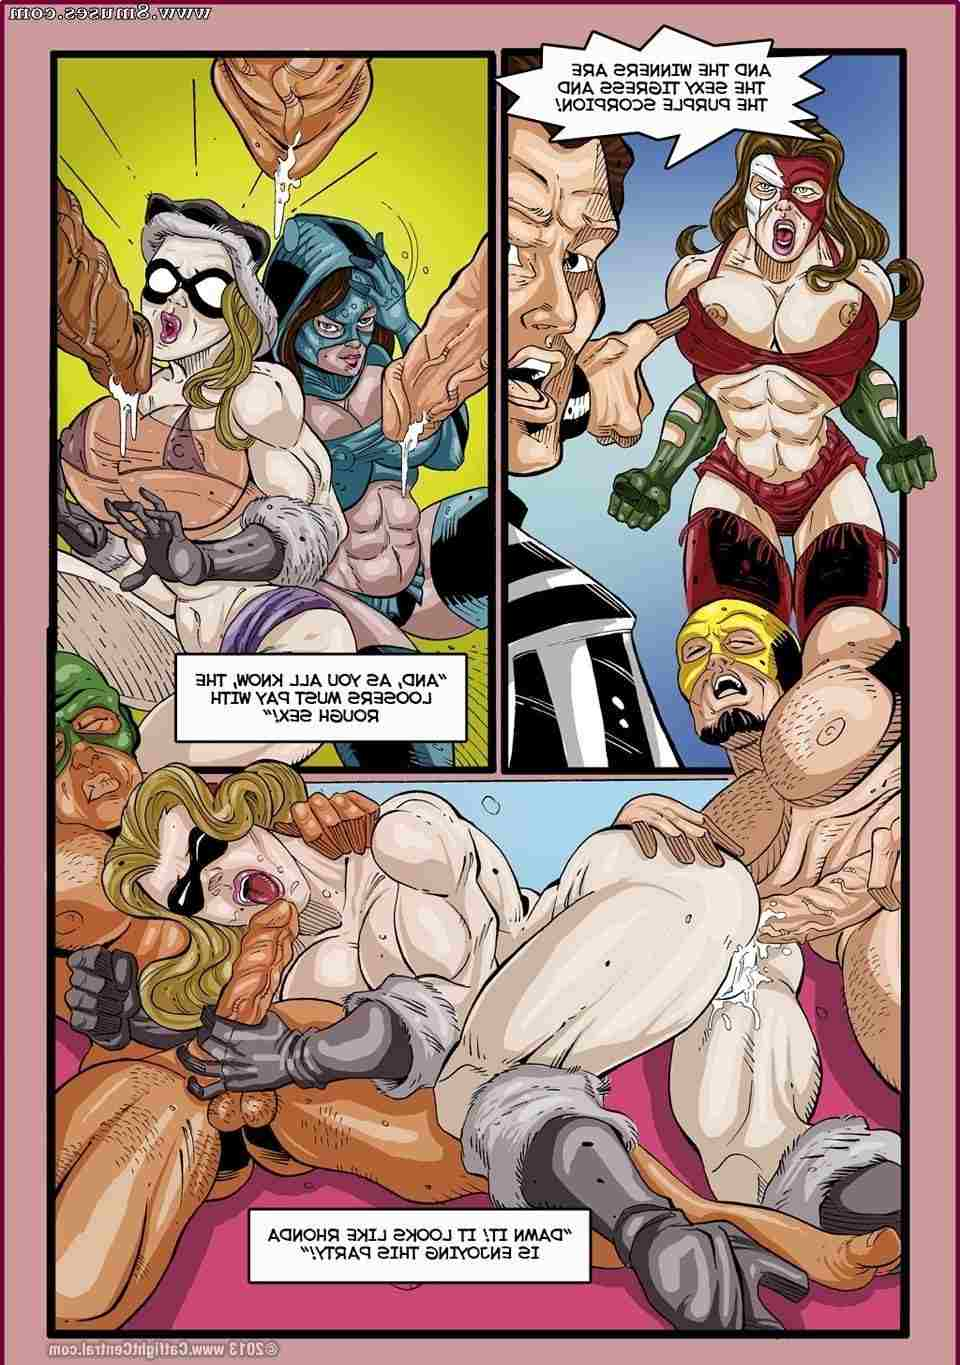 Central-Comics/Catfight-Central/Lucha-Libre-XXX Lucha_Libre_XXX__8muses_-_Sex_and_Porn_Comics_34.jpg